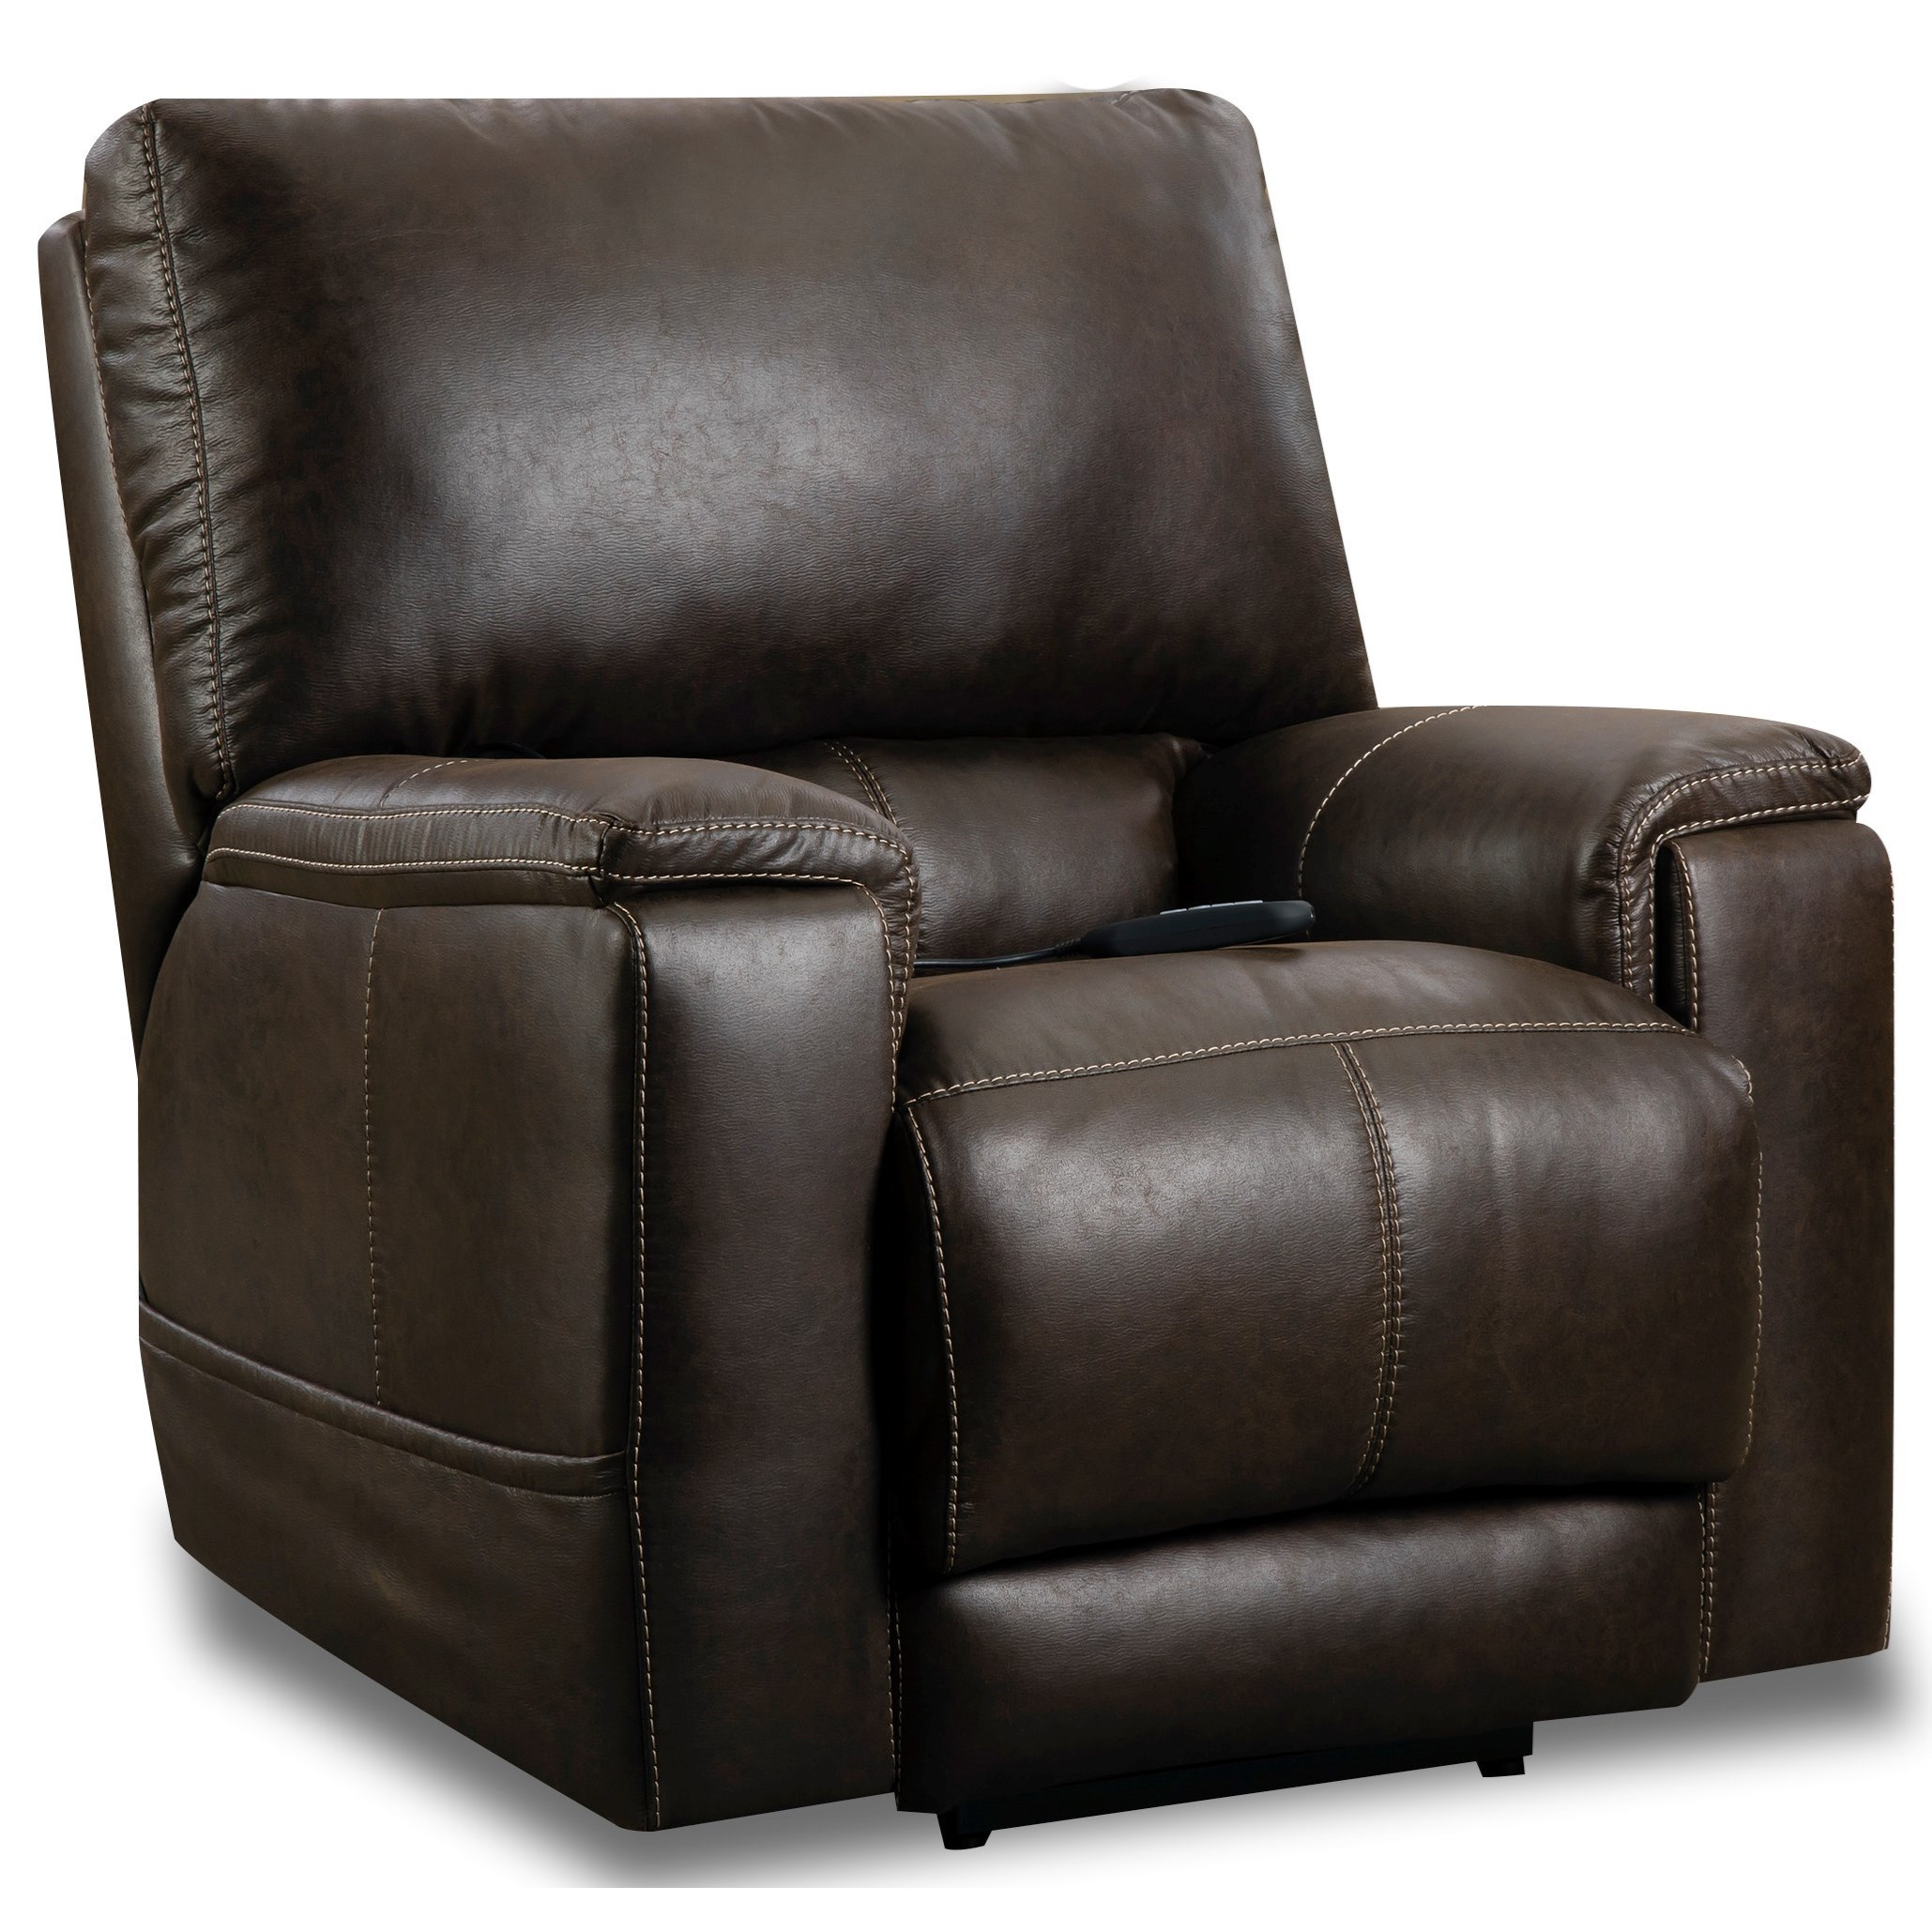 197 Collection Power Recliner  by HomeStretch at Bullard Furniture